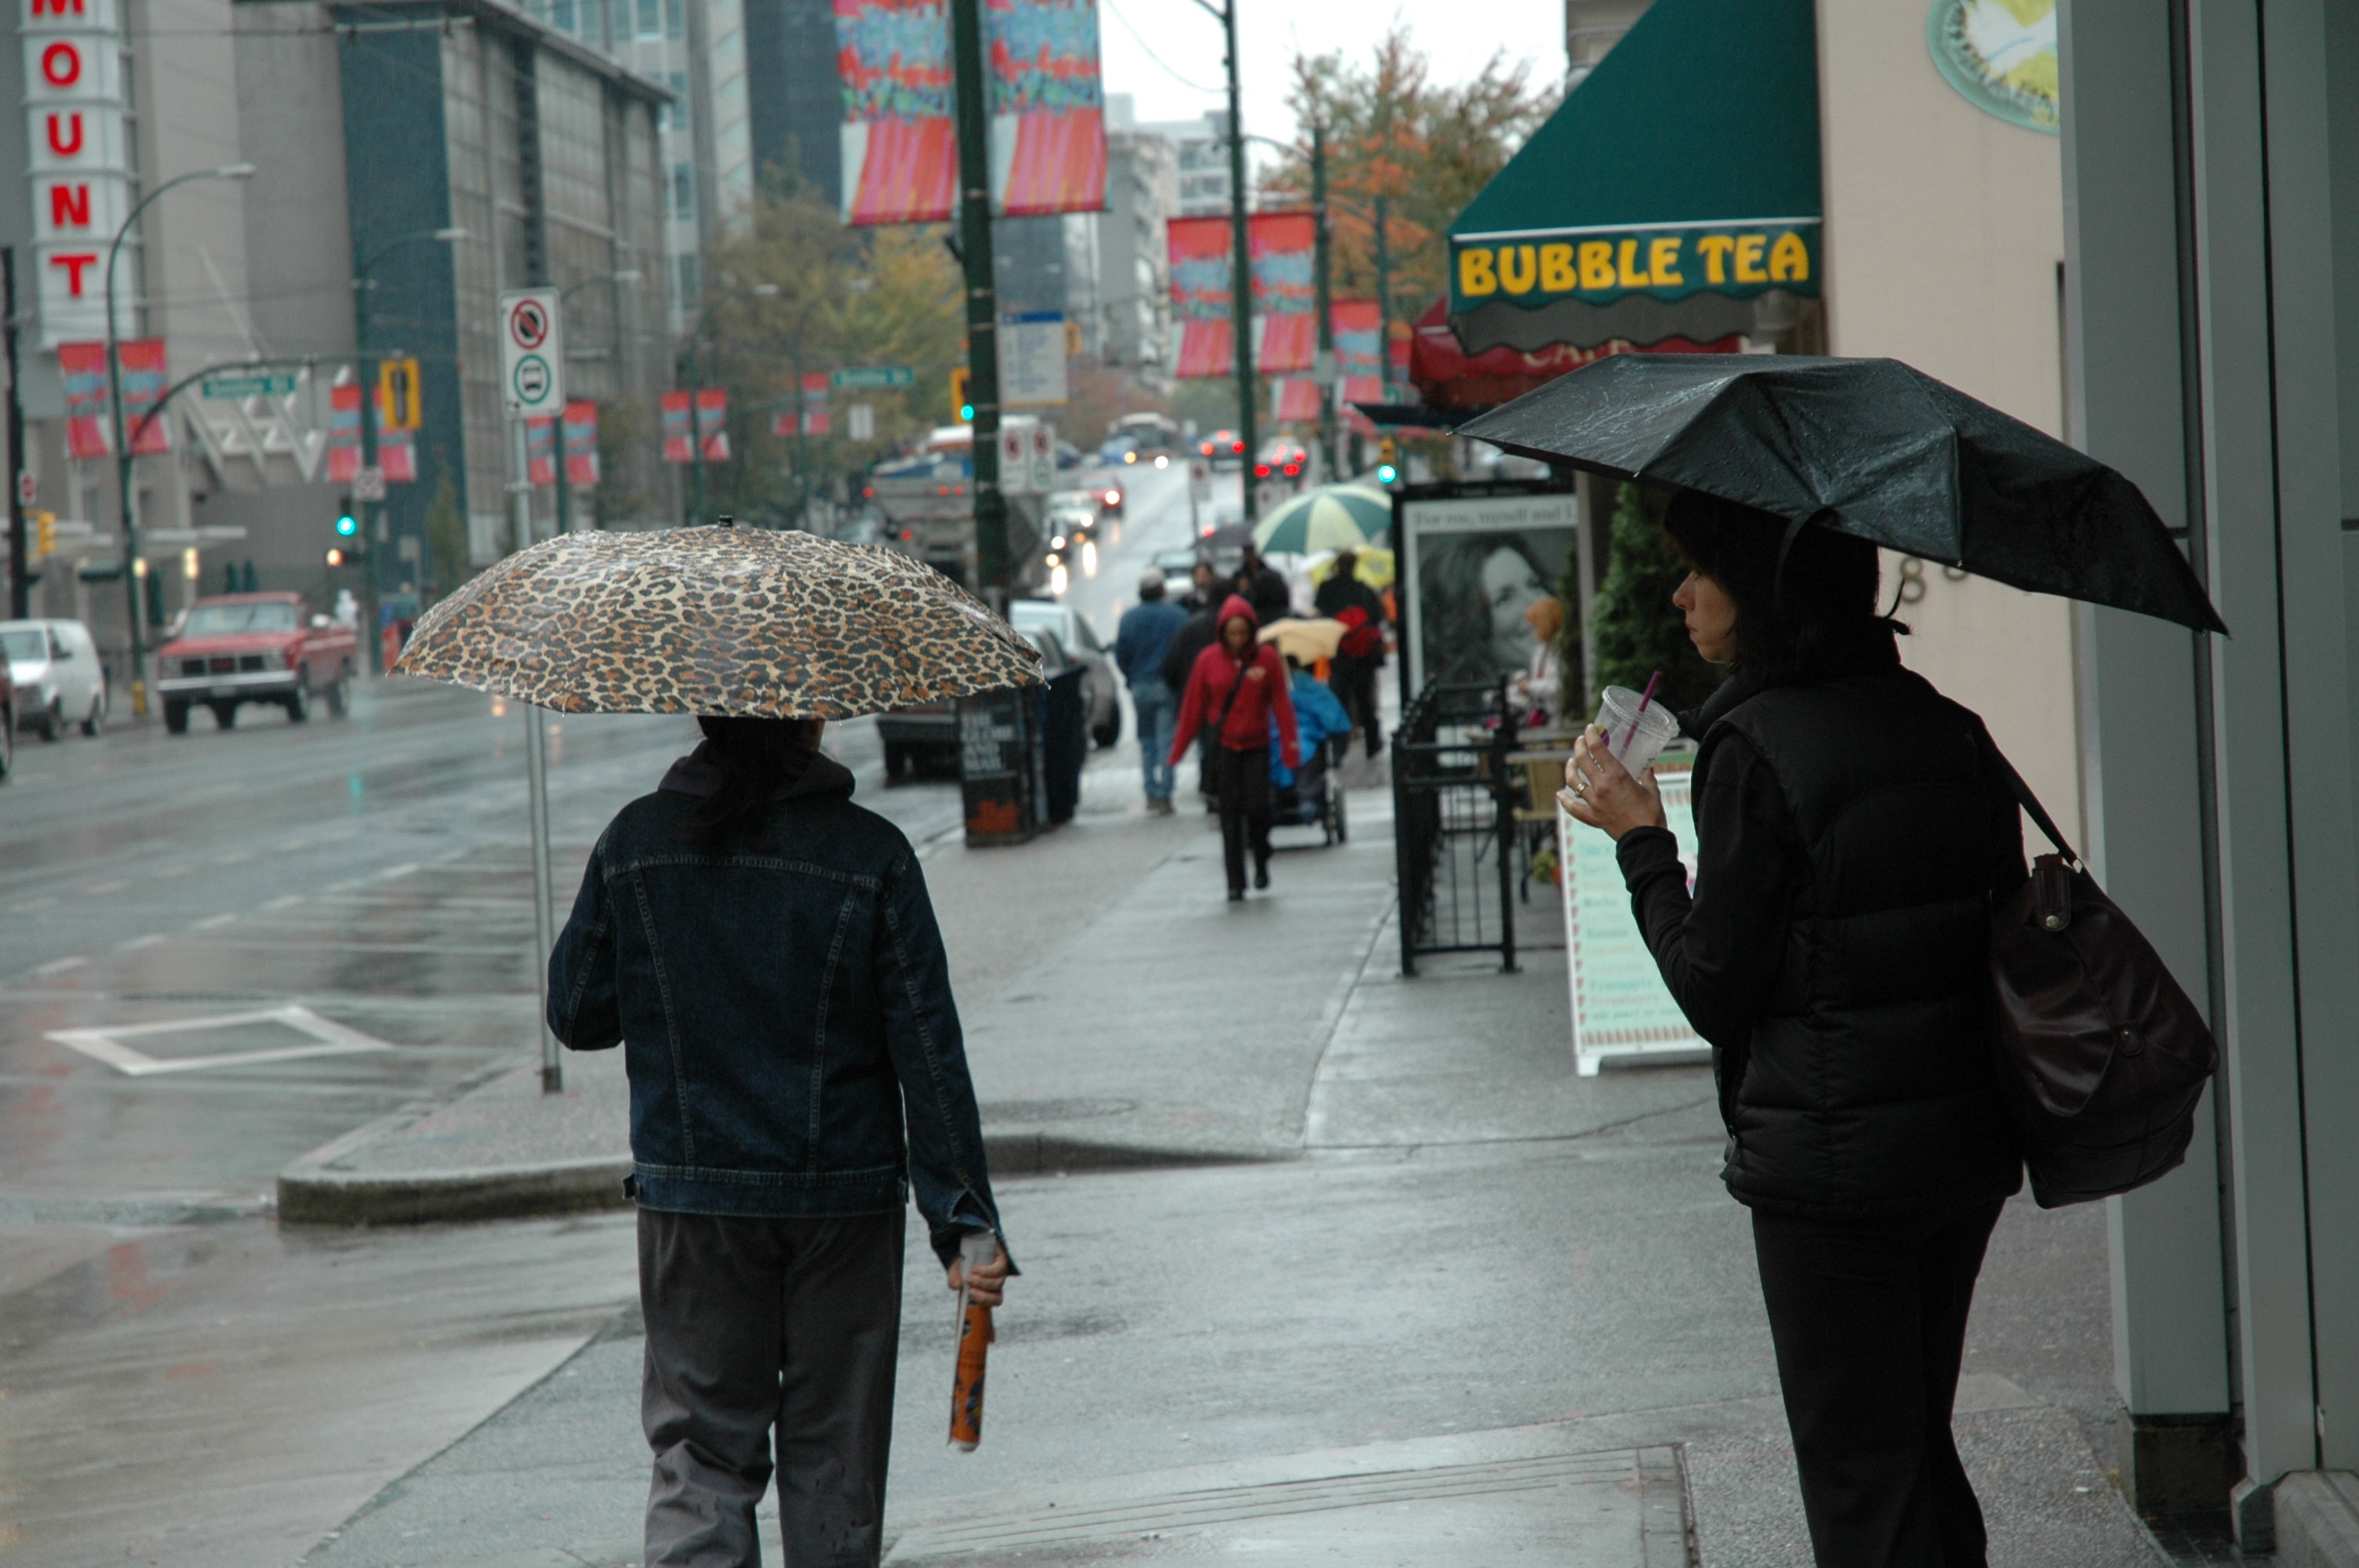 File:Rain Umbrella 01.JPG.